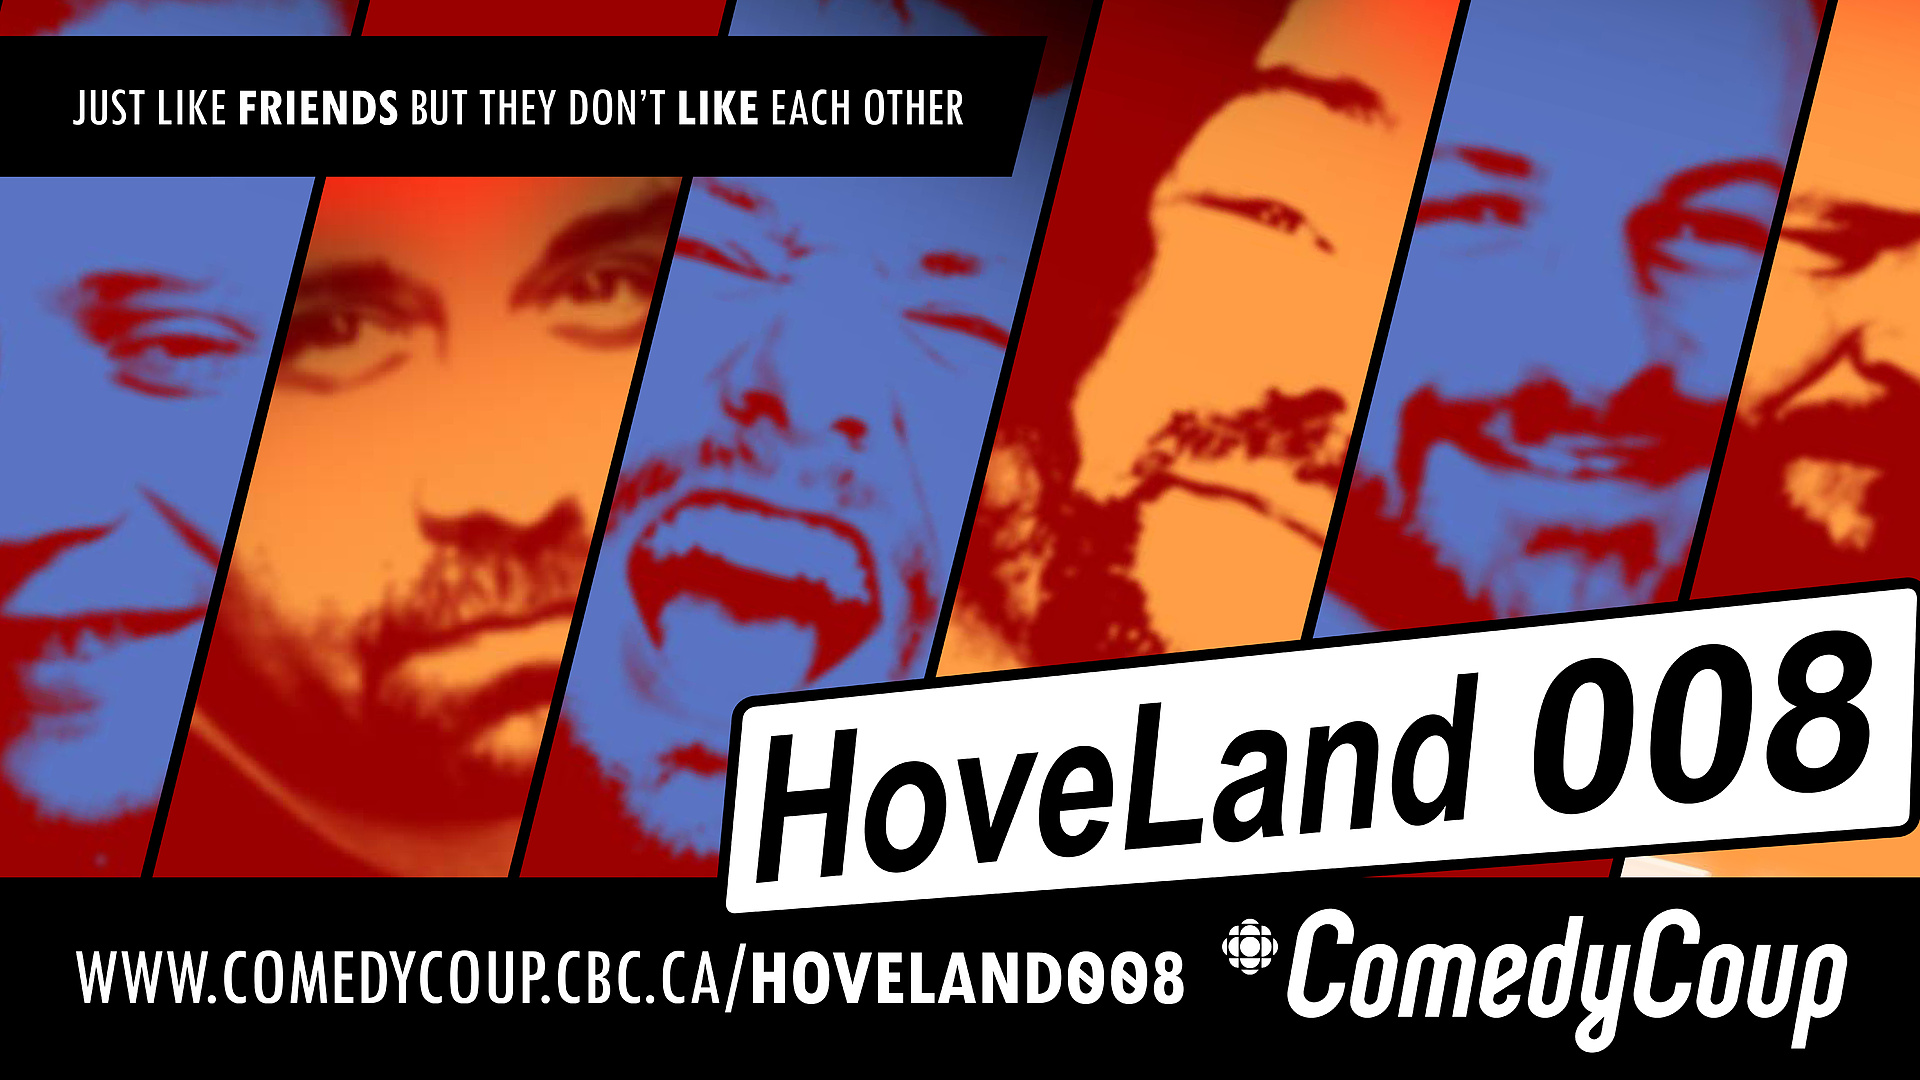 Week 4 Key It: Poster A HoveLand008